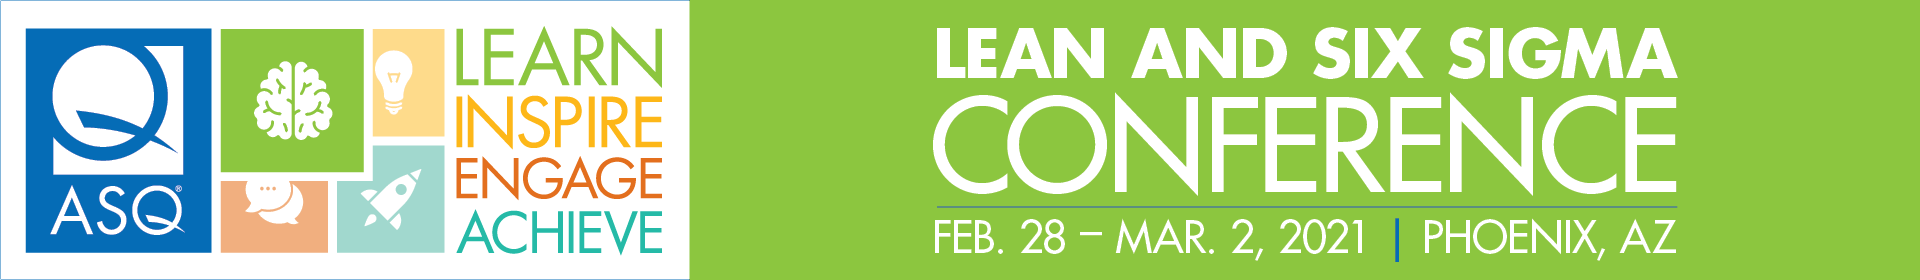 2021 Lean and Six Sigma Event Banner